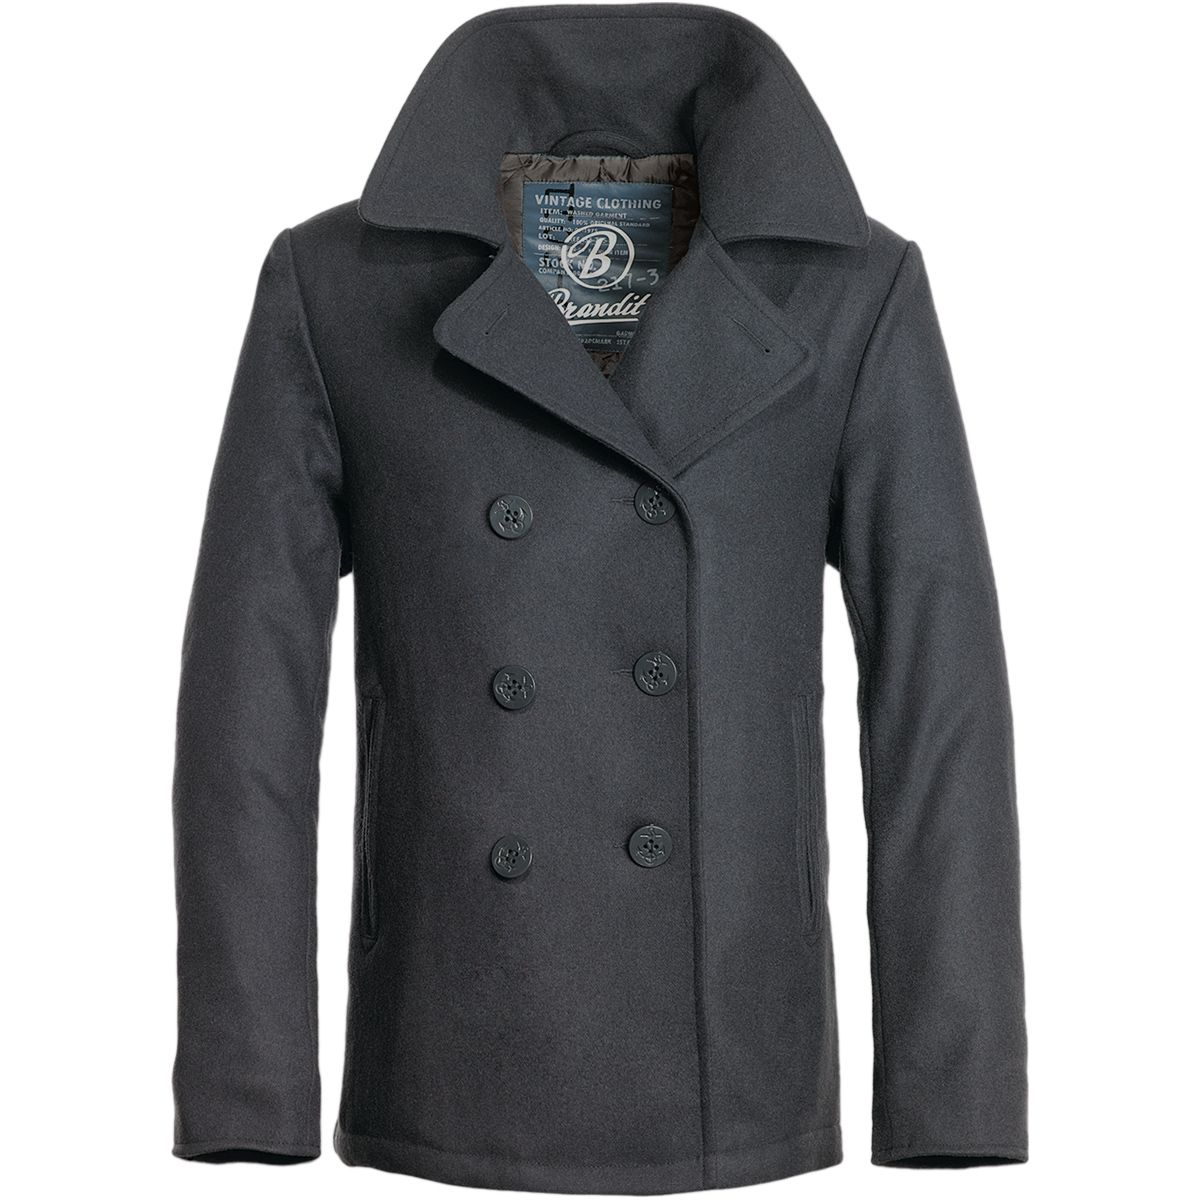 Details about BRANDIT CLASSIC NAVY PEA COAT WARM MENS WOOL